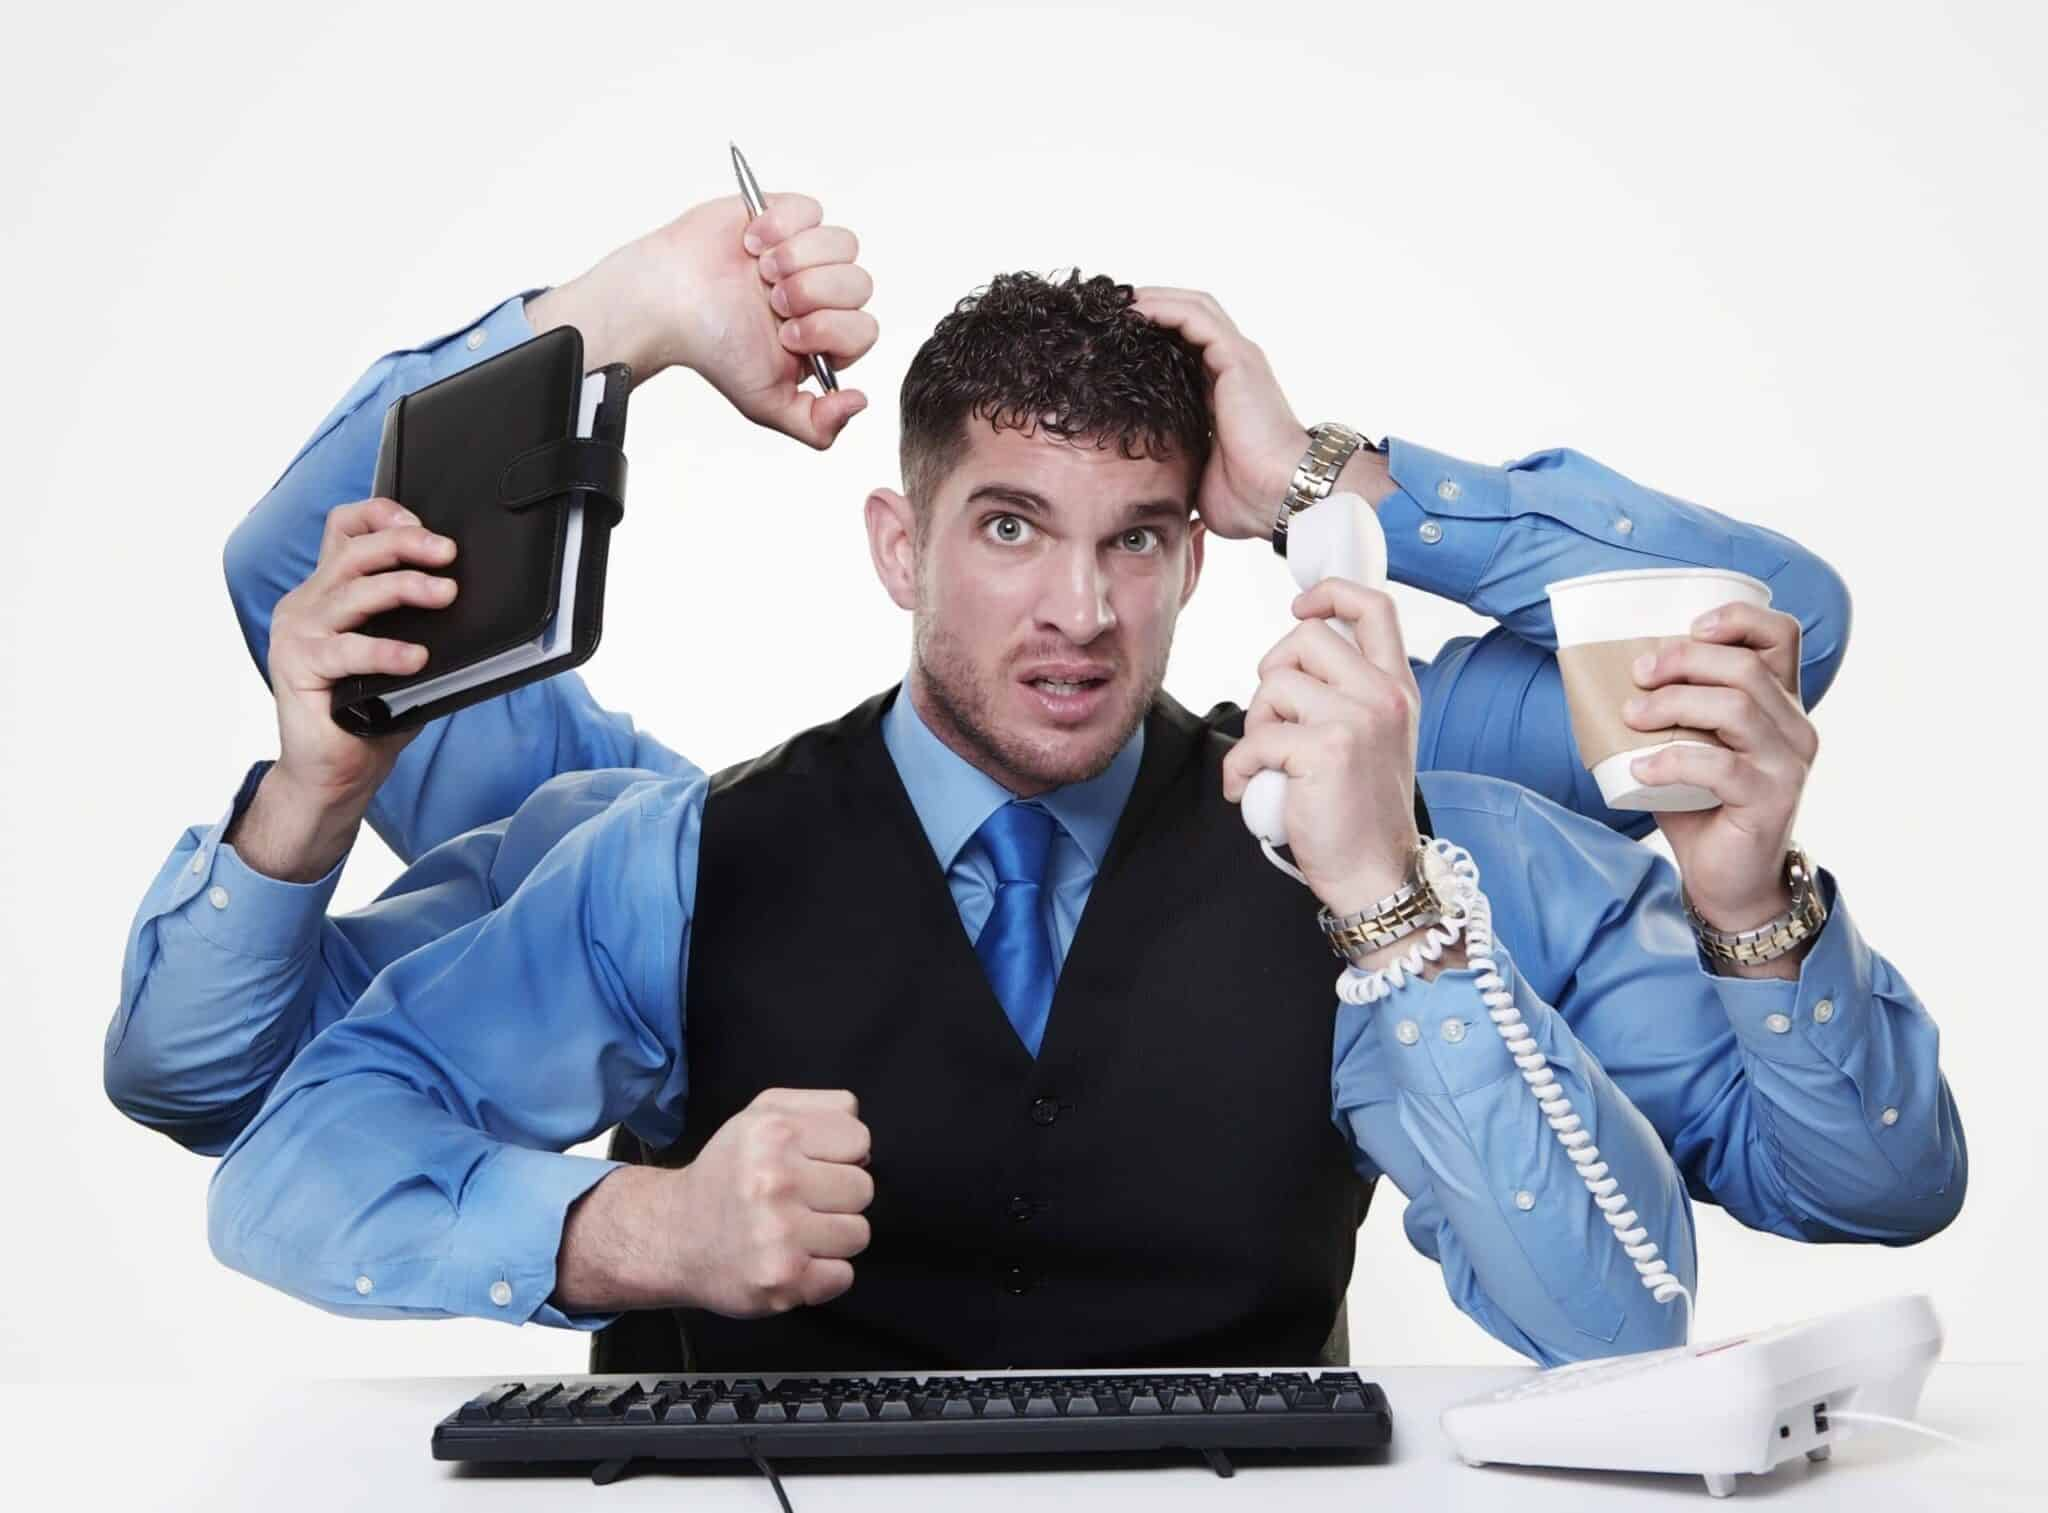 individual businessperson trying to perform and handle more than one task at the same time, not doing very from the looks of things